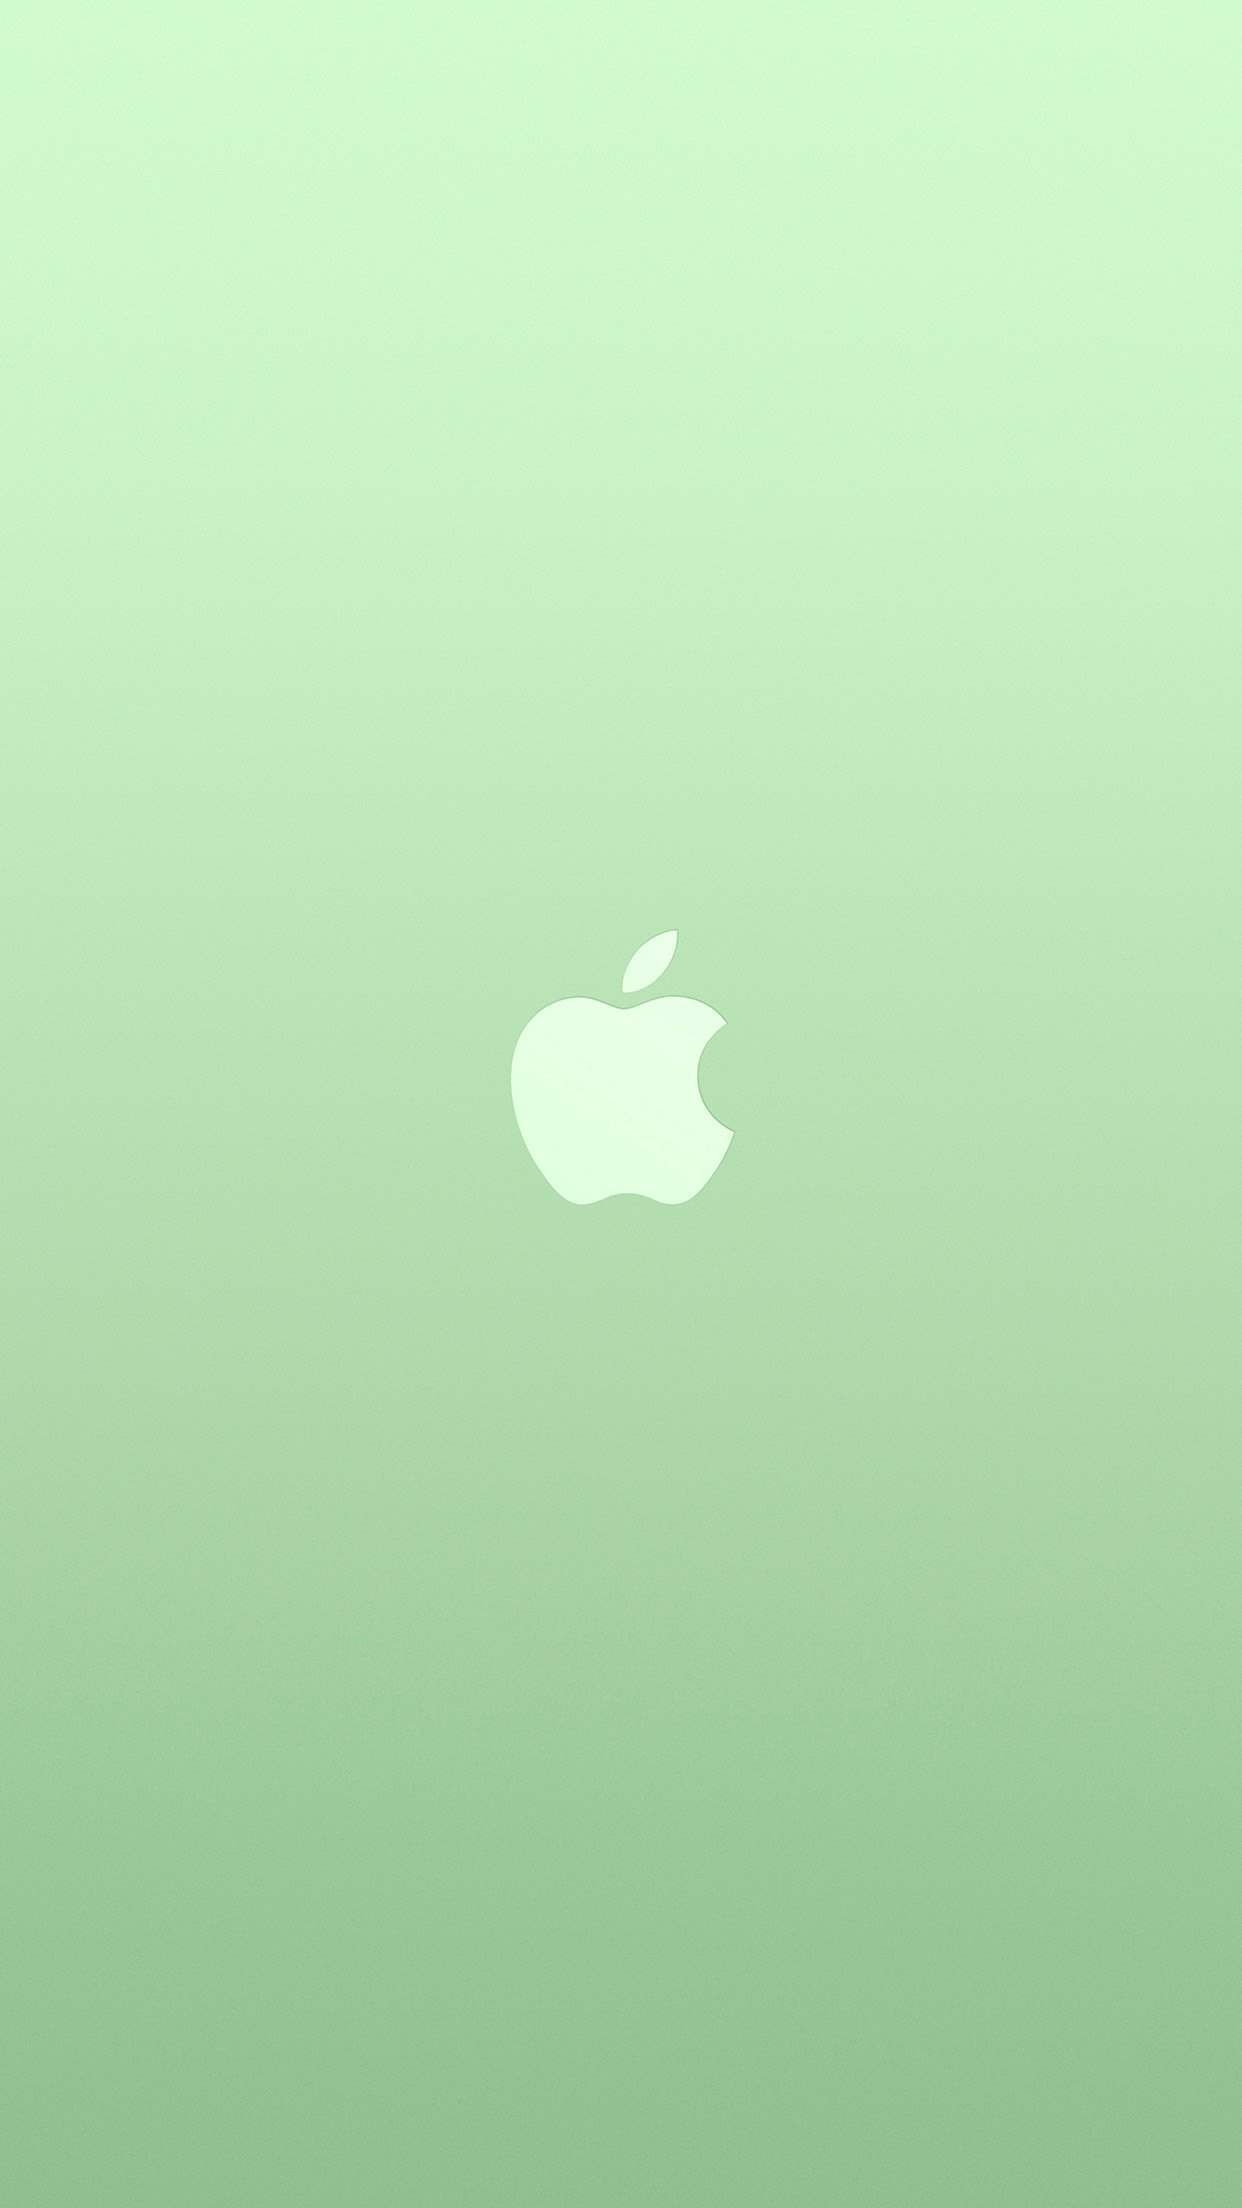 Download Mega Collection Of Cool Iphone Wallpapers Apple Logo Wallpaper Best Iphone Wallpapers Iphone Wallpaper